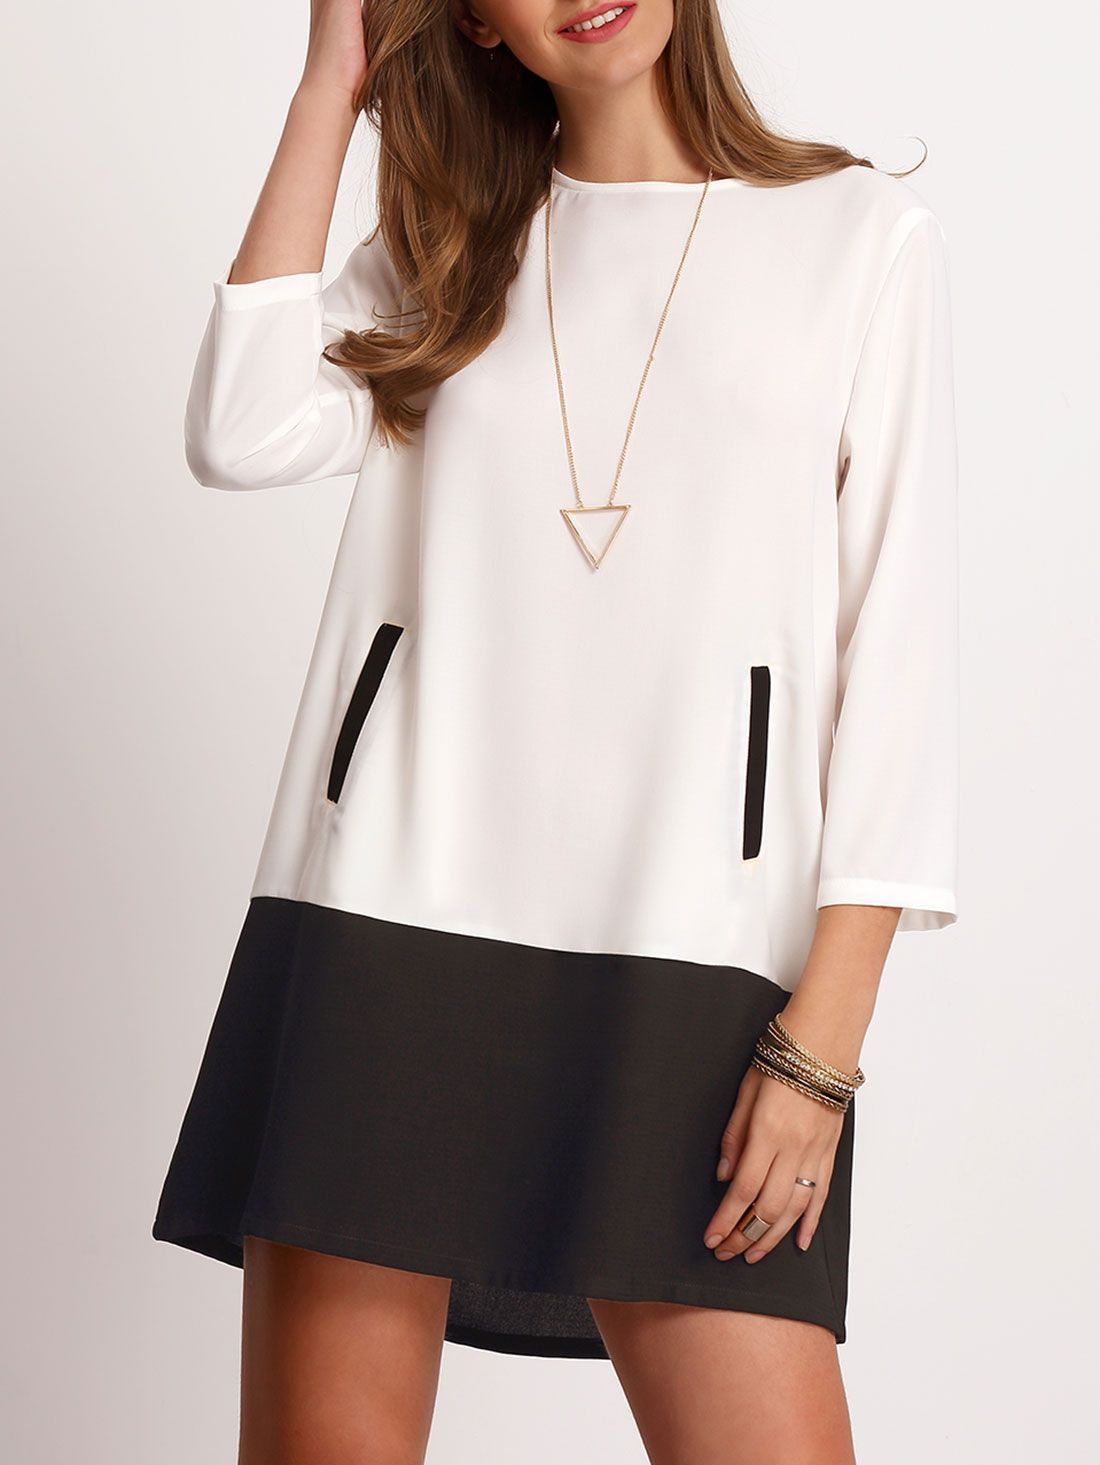 White Black Crew Neck Pockets Color Block Dress EmmaCloth-Women Fast Fashion Online